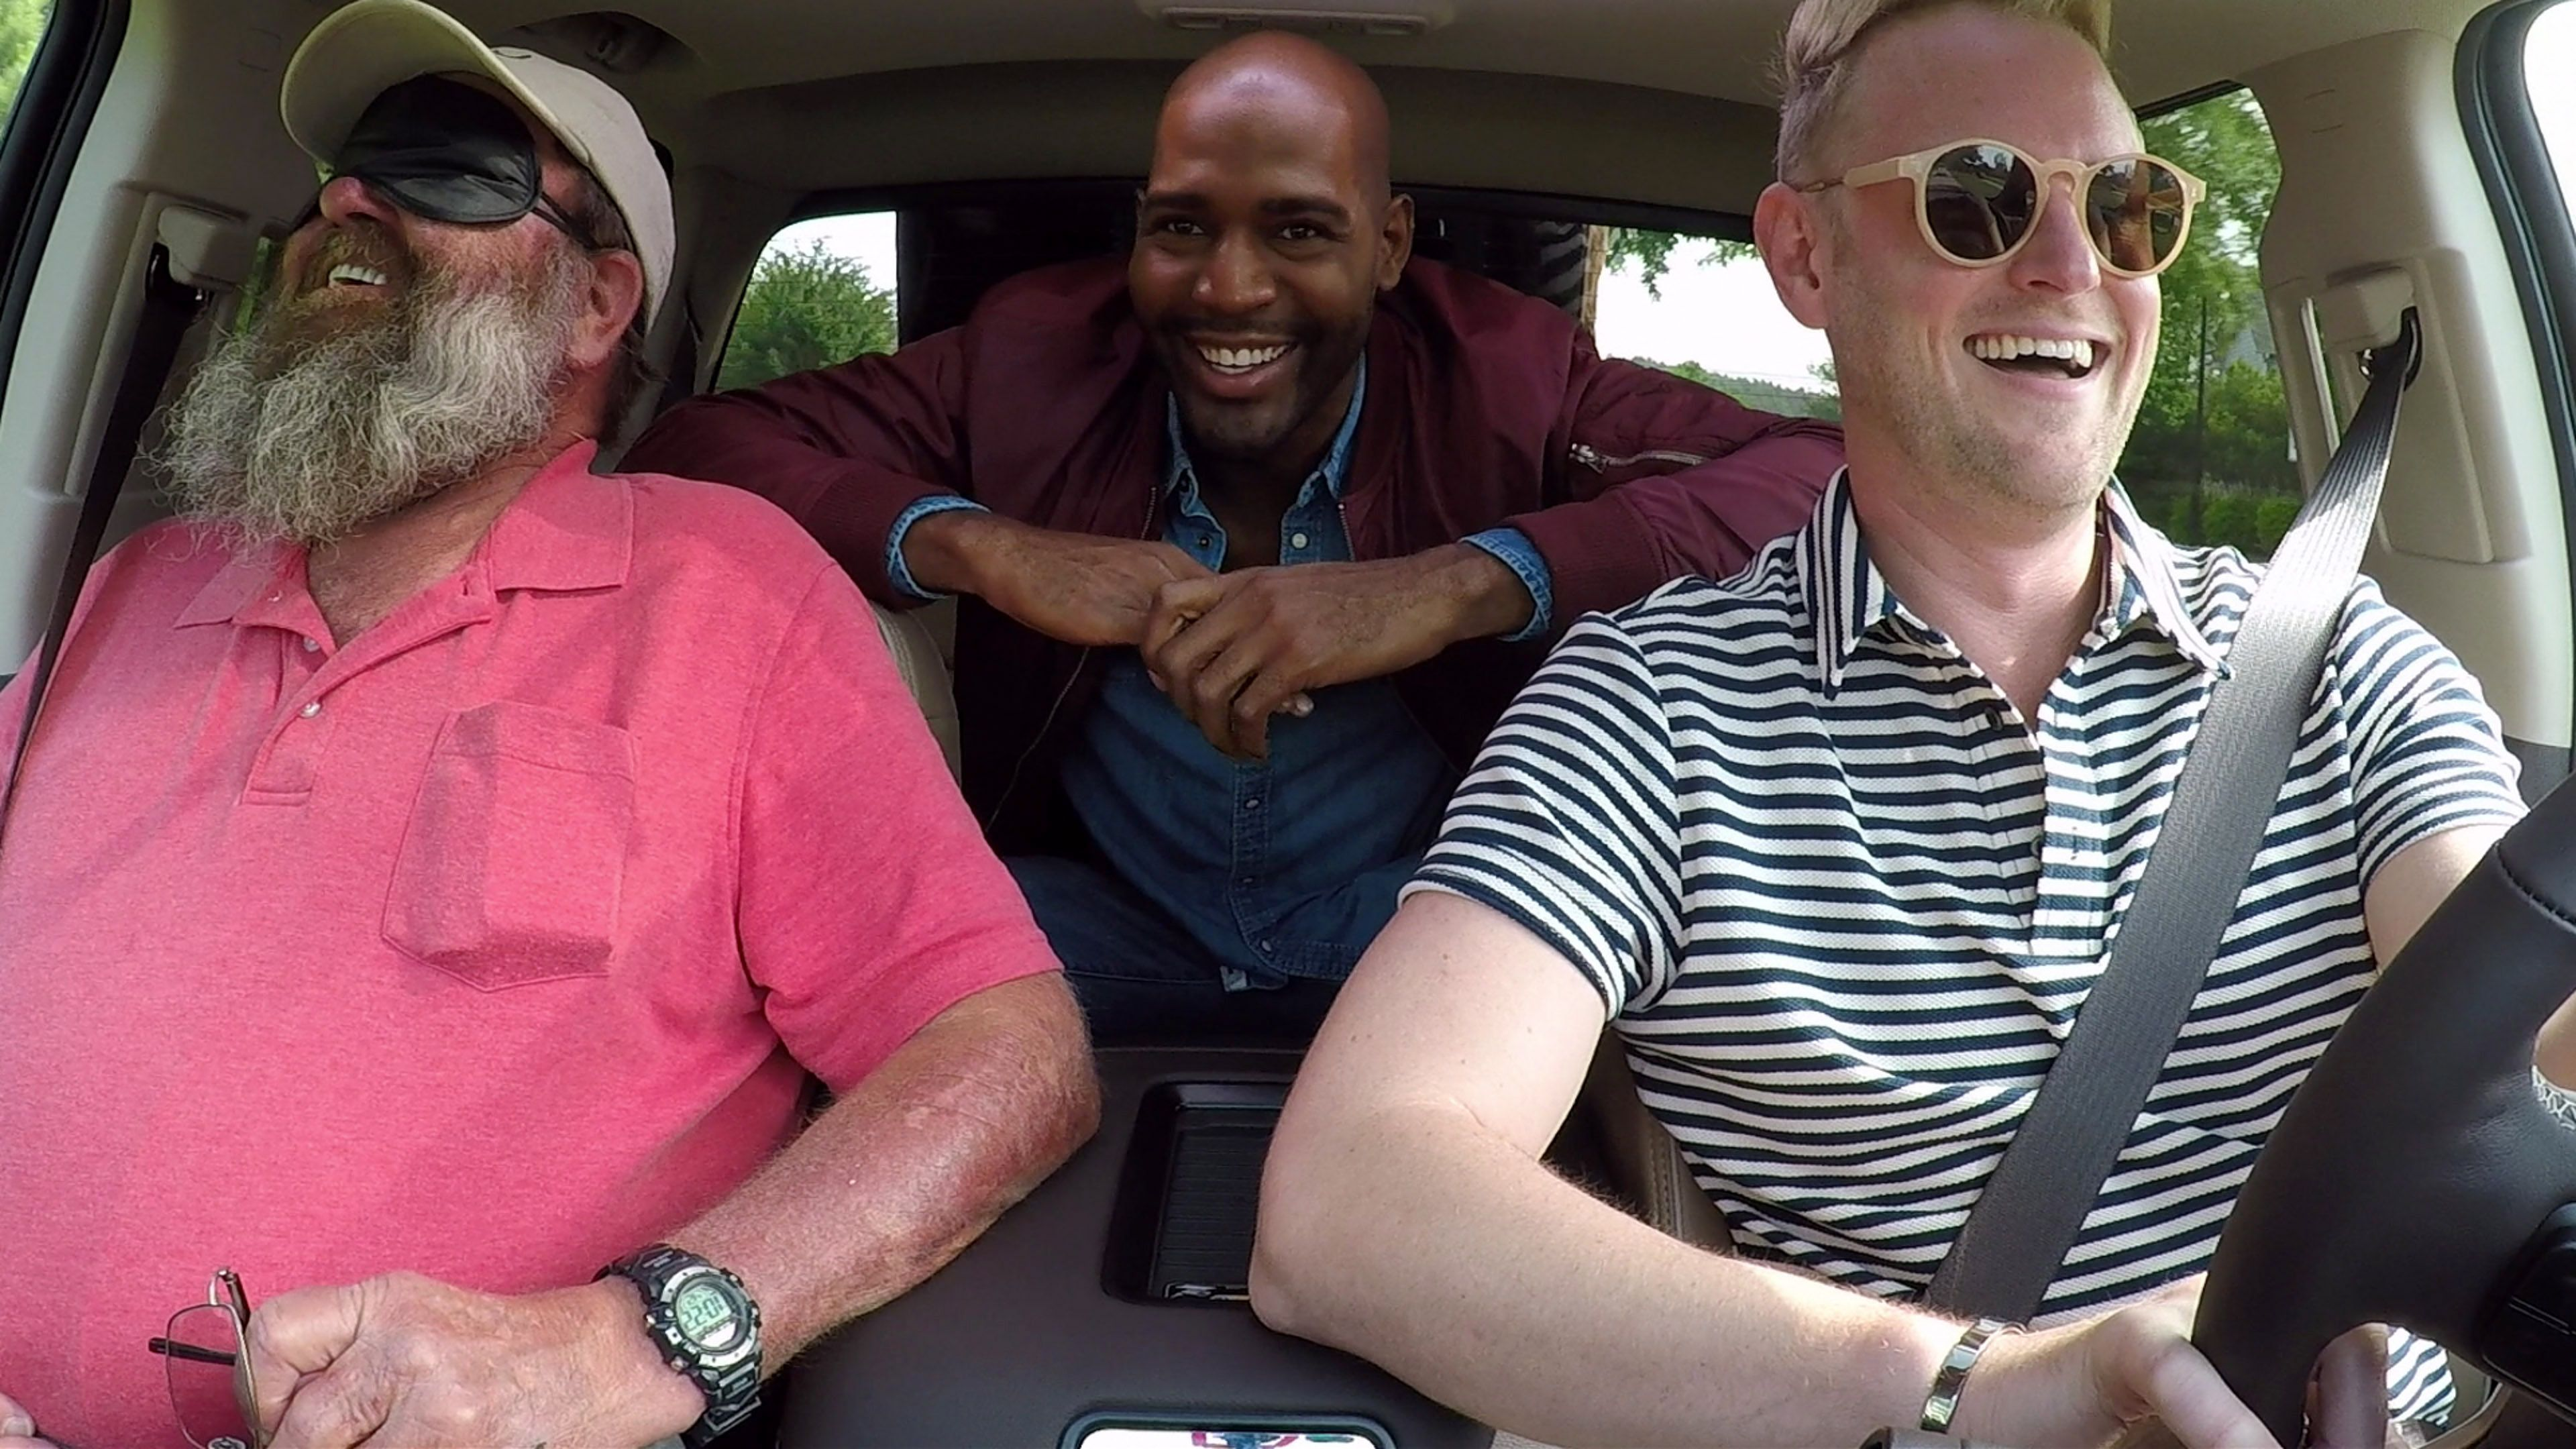 Netflix's 'Queer Eye for the Straight Guy' Reboot Is (Fabulously) Heartwarming